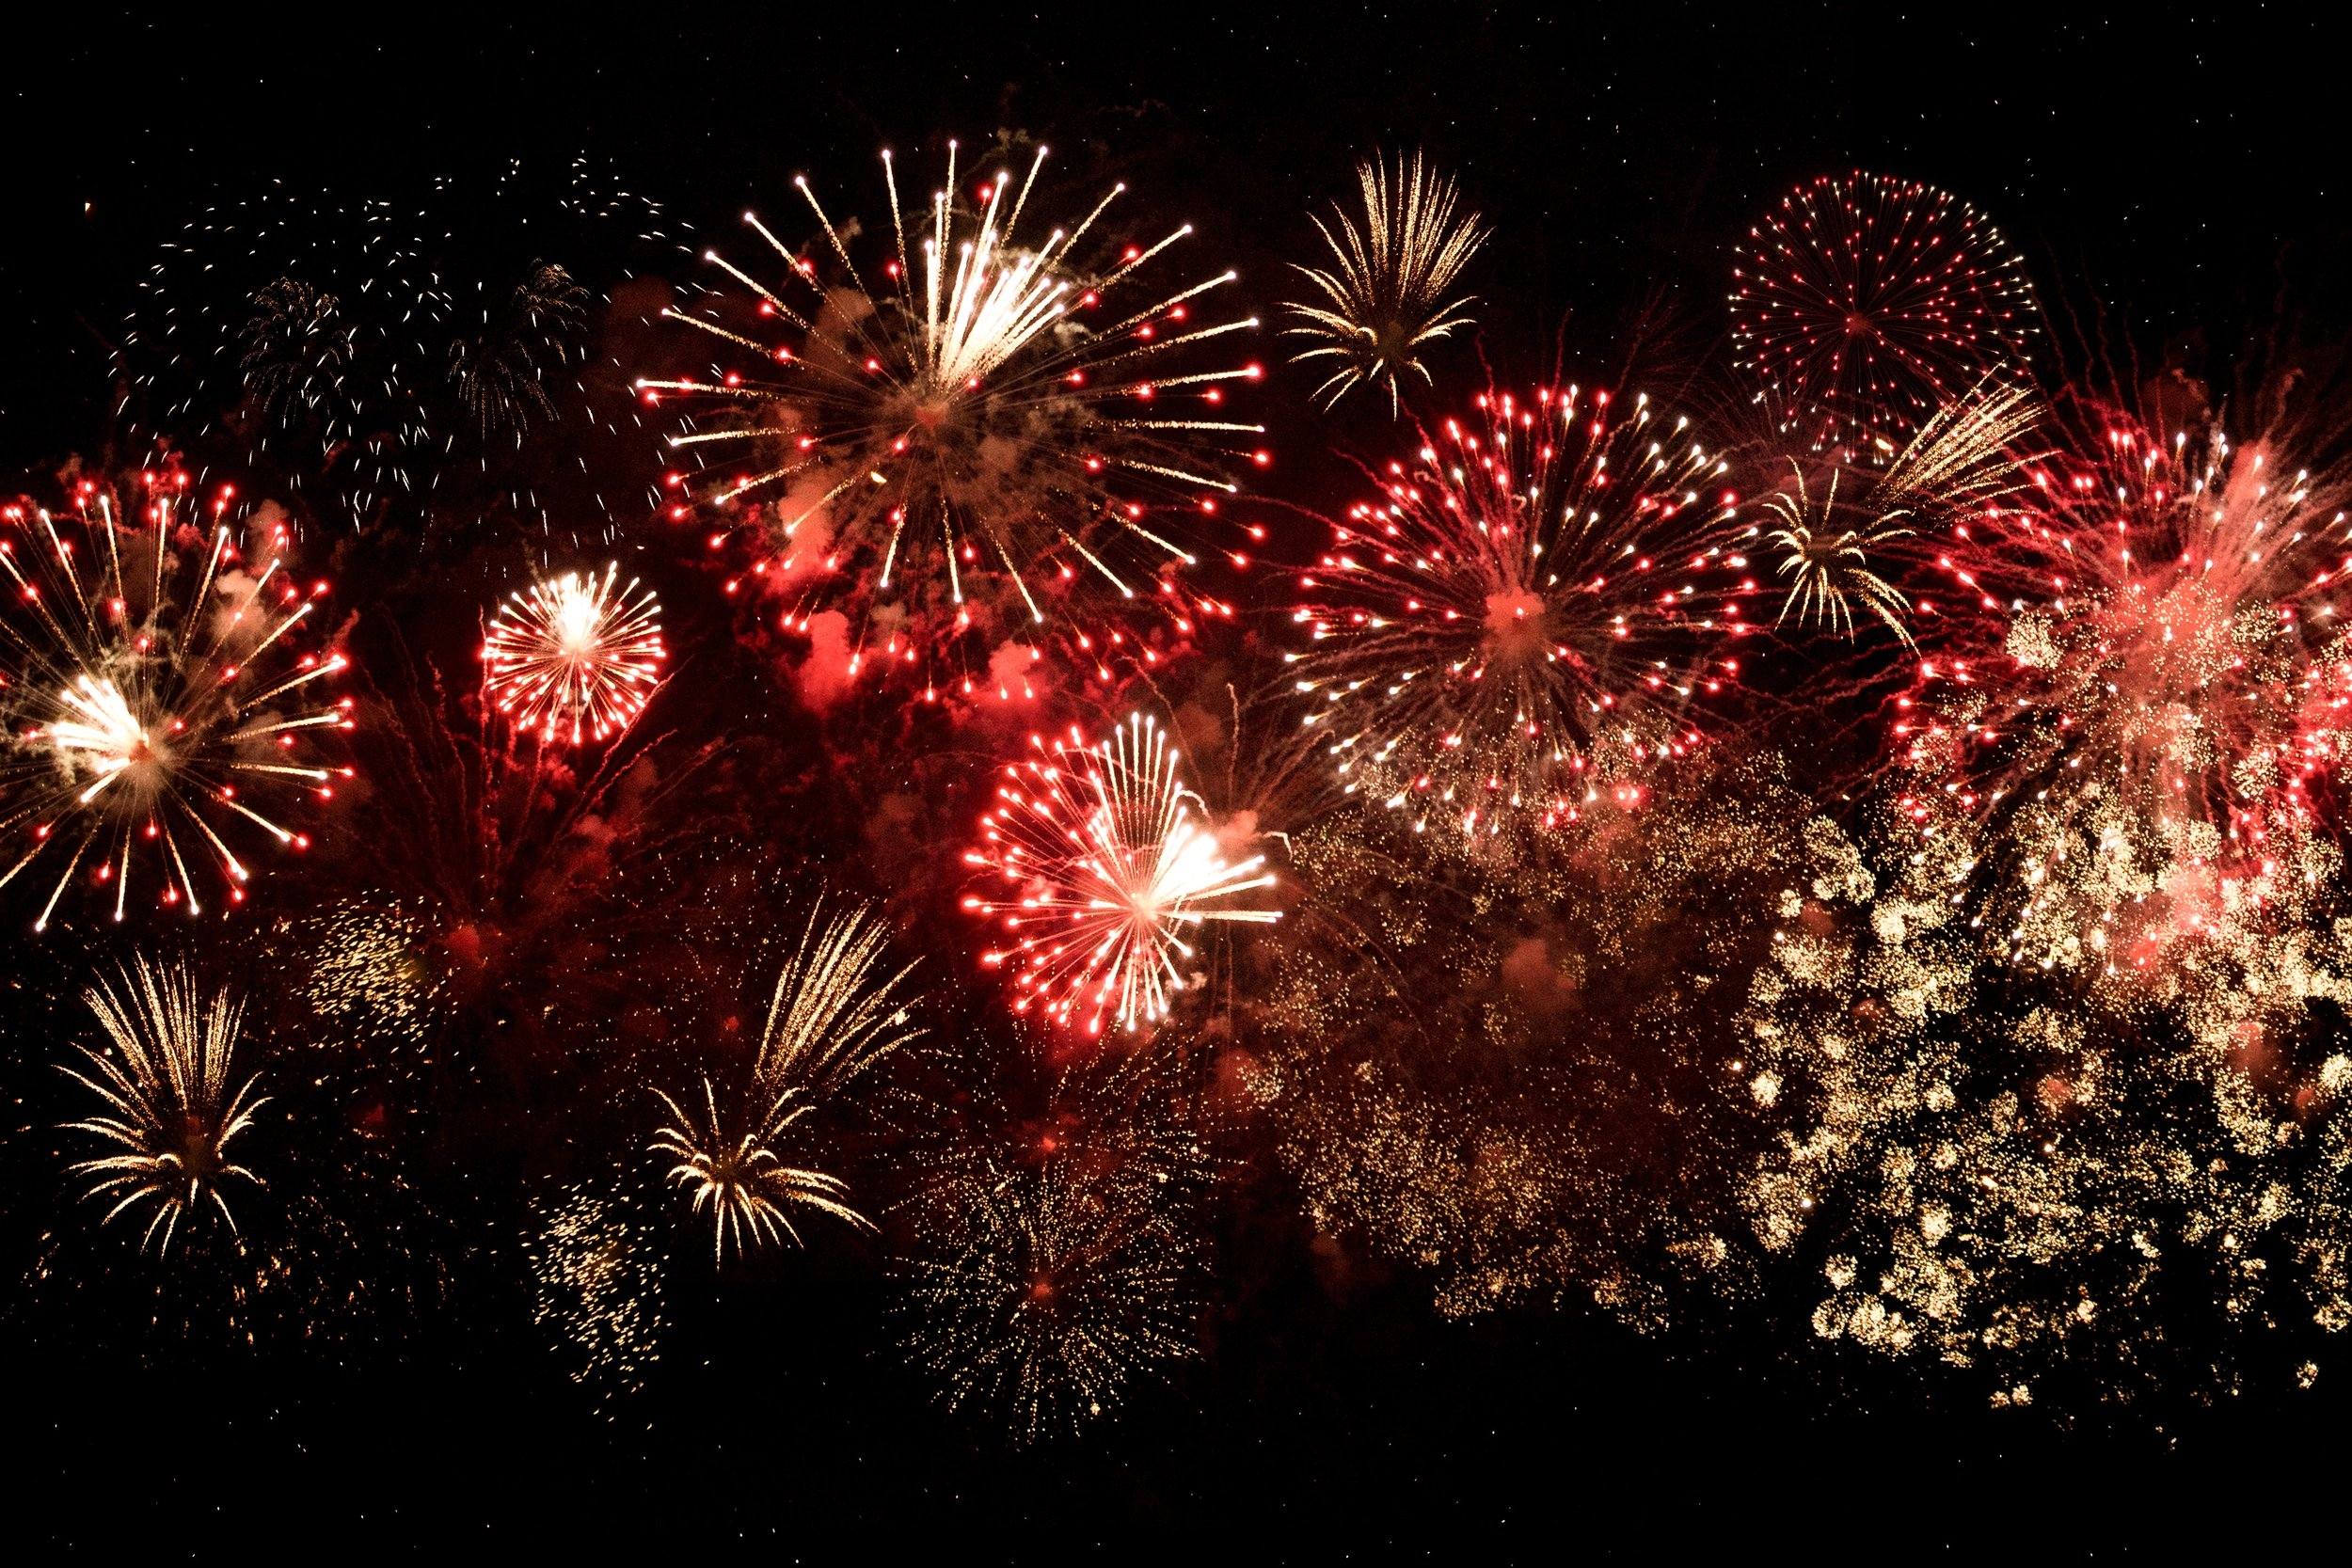 A typical fireworks scene